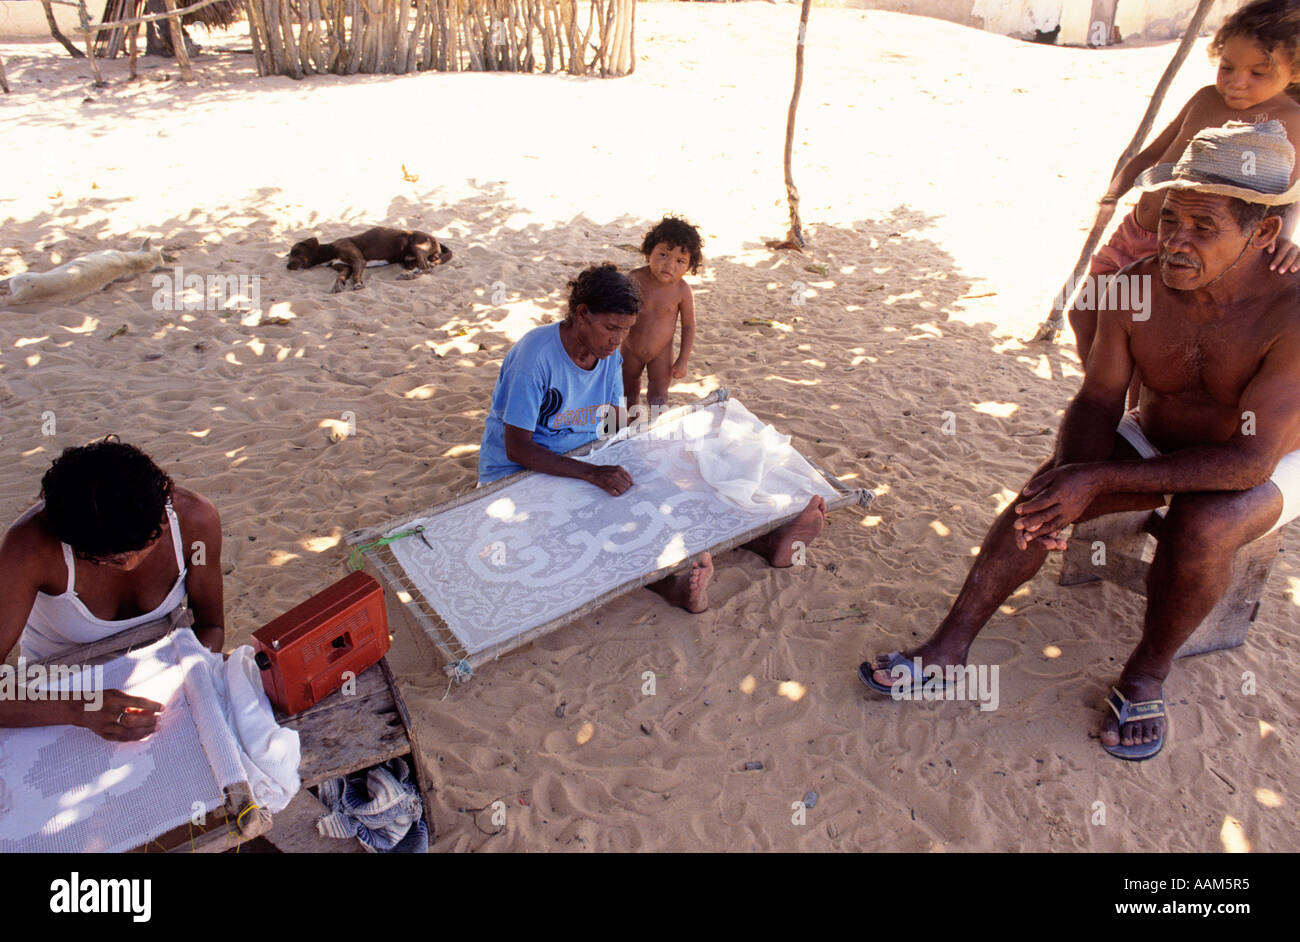 Lacemakers, family work at Canoa Quebrada city in Ceara State, Northeastern Brazil - traditional work, craftmanship for exportation. - Stock Image